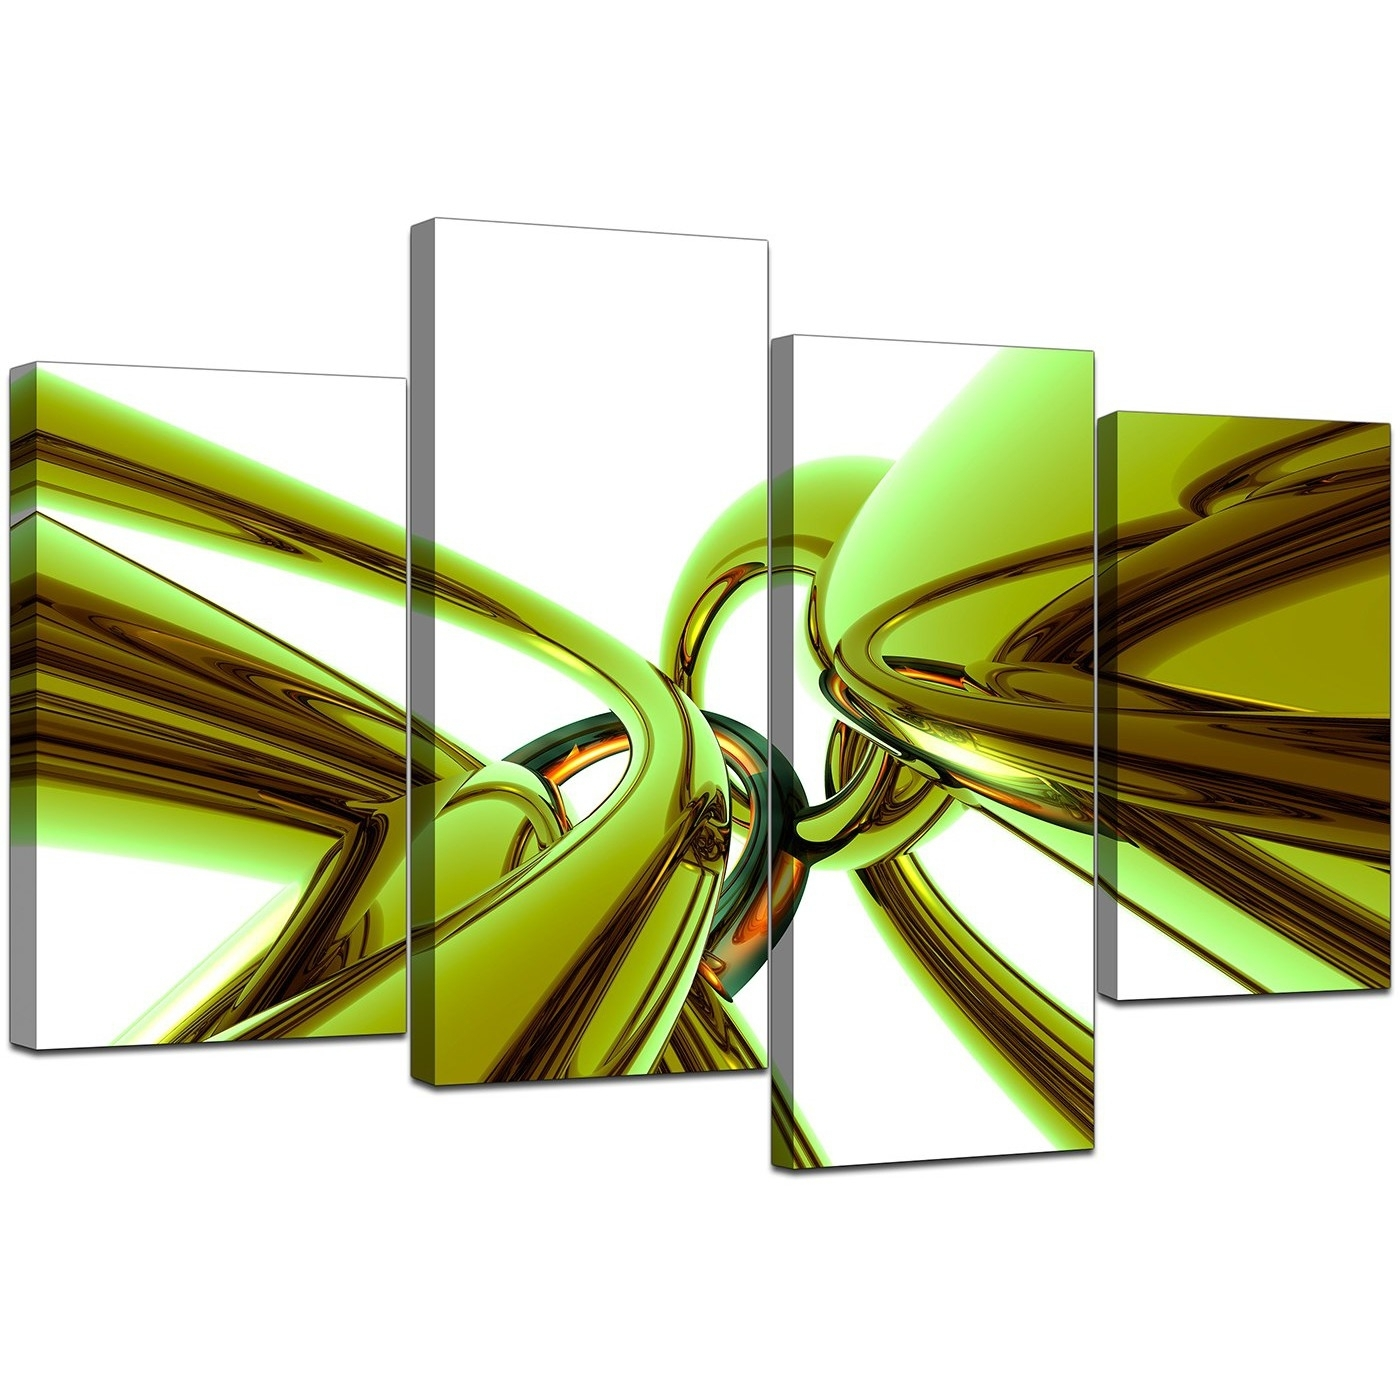 Abstract Canvas Wall Art In Green For Your Living Room – Set Of 4 Intended For Most Recently Released Lime Green Abstract Wall Art (View 5 of 20)